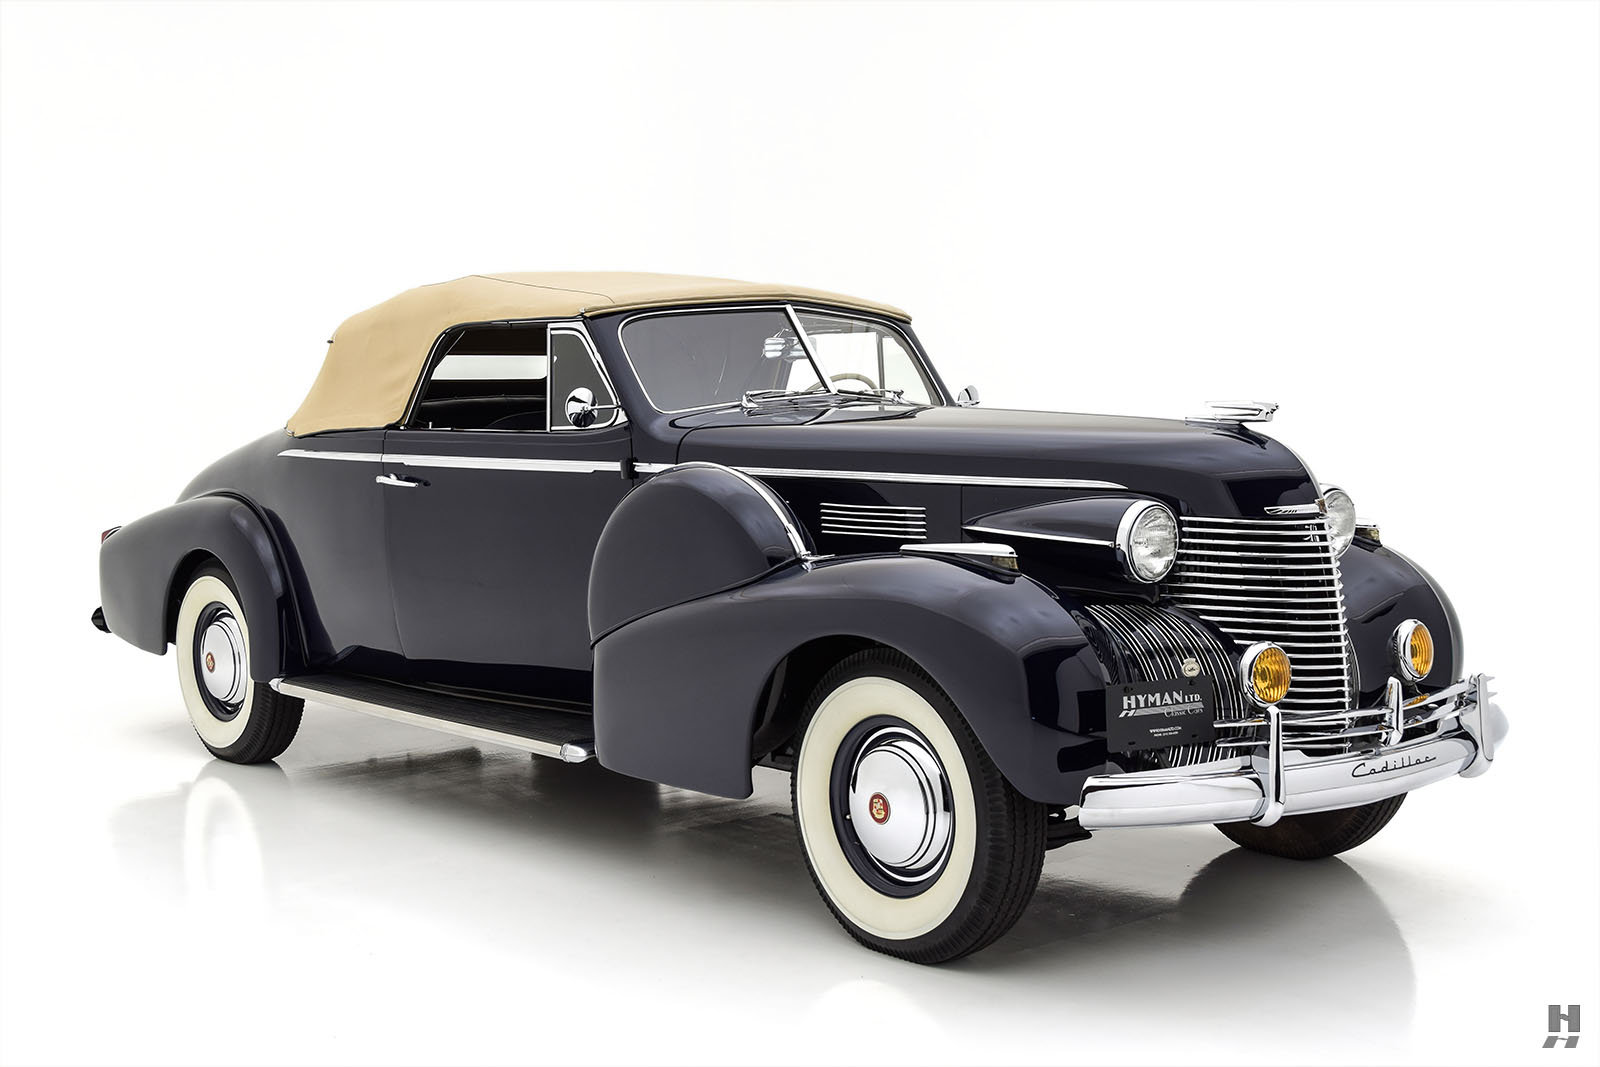 1940 CADILLAC SERIES 75 CONVERTIBLE COUPE For Sale (picture 2 of 6)